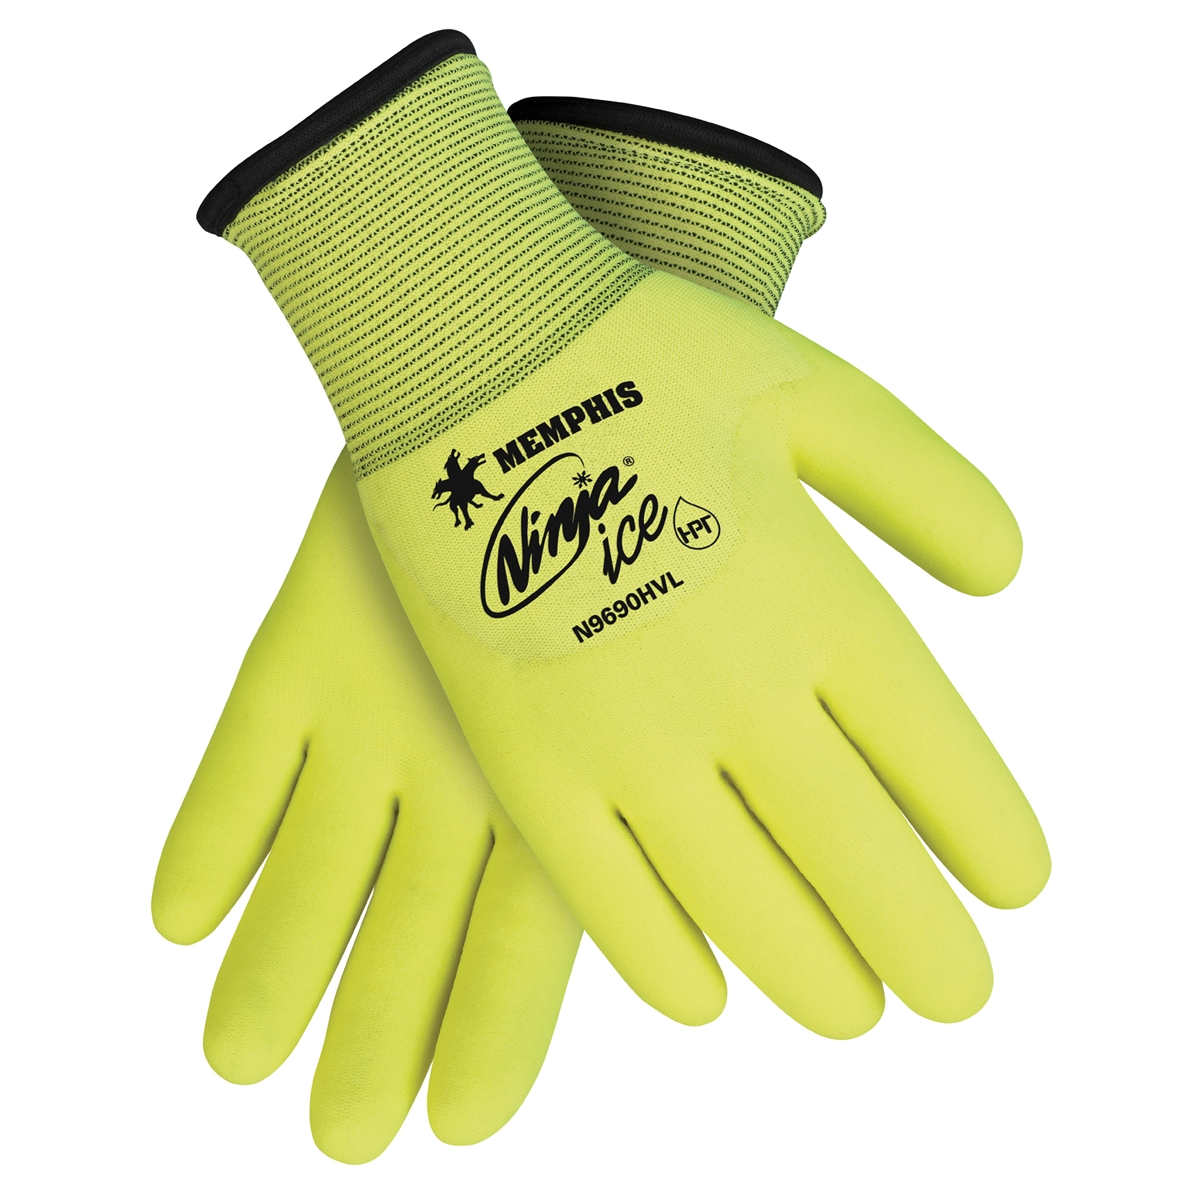 N9690HV : Ninja Ice Hi-Viz Yellow Nylon Liner with HPT Coating